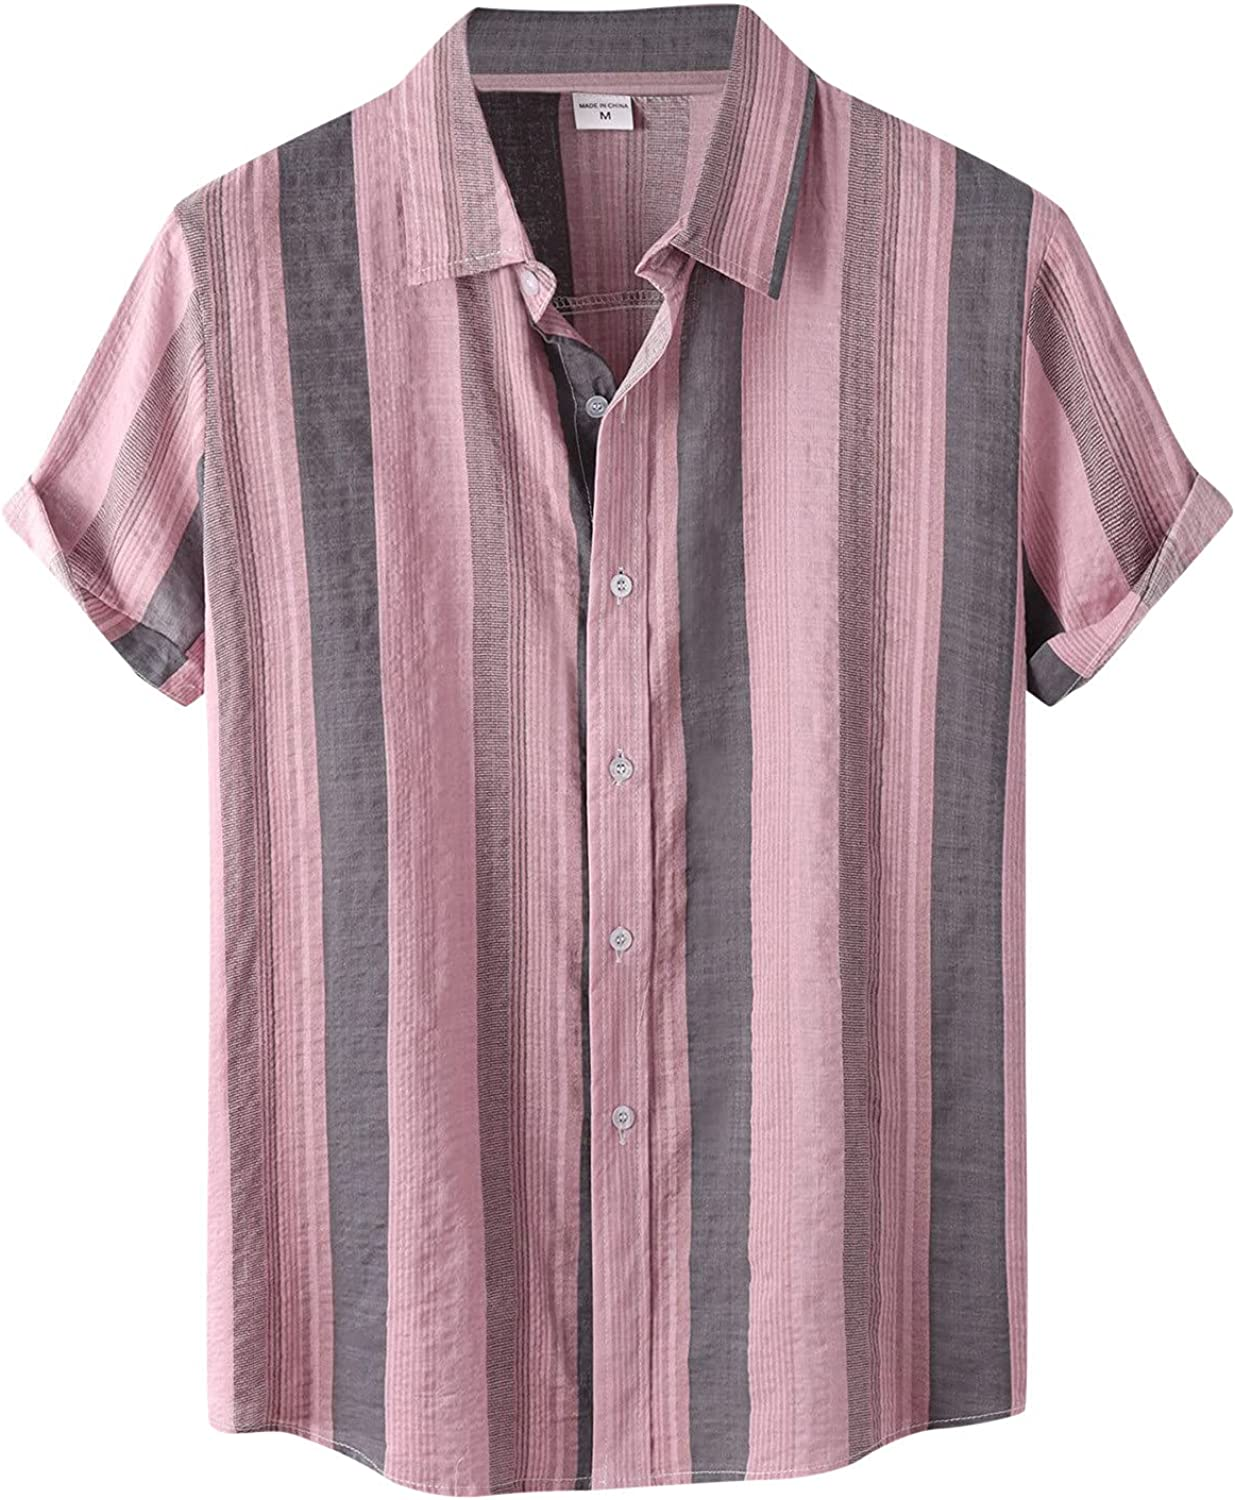 Manufacturer direct delivery Men's Cotton Selling and selling Linen Shirts Short Sleeve Floral Summer Button Down